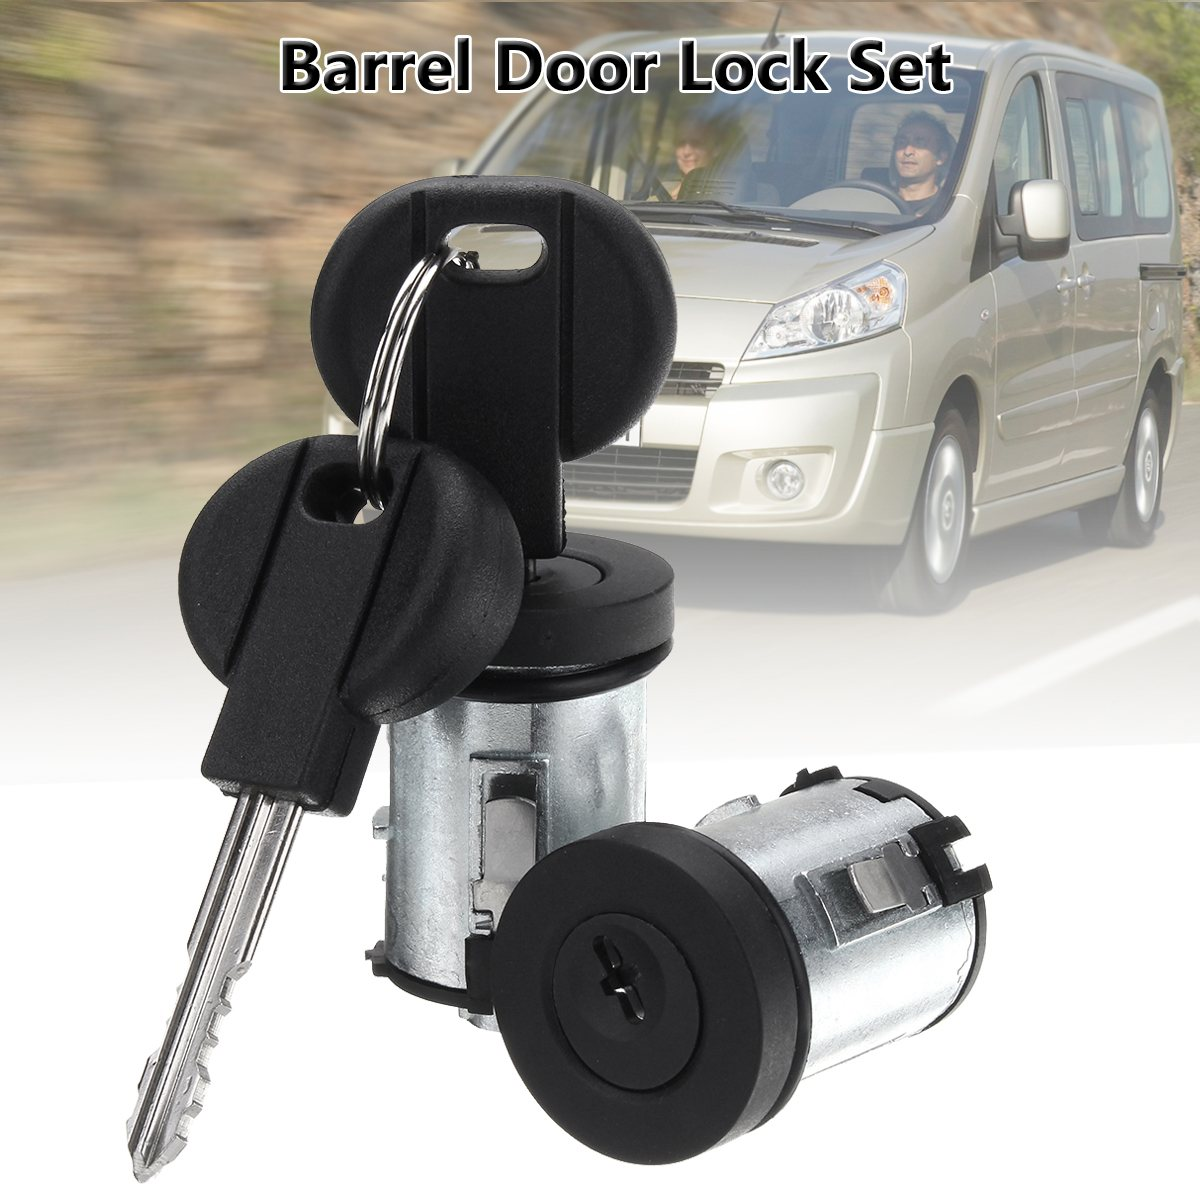 2Pcs Car Barrel Door Locks Keys Set For Peugeot Expert 806 For Citroen Dispatch Xantia 9170.AY 4162.C9 4162.L0 4162.PA2Pcs Car Barrel Door Locks Keys Set For Peugeot Expert 806 For Citroen Dispatch Xantia 9170.AY 4162.C9 4162.L0 4162.PA